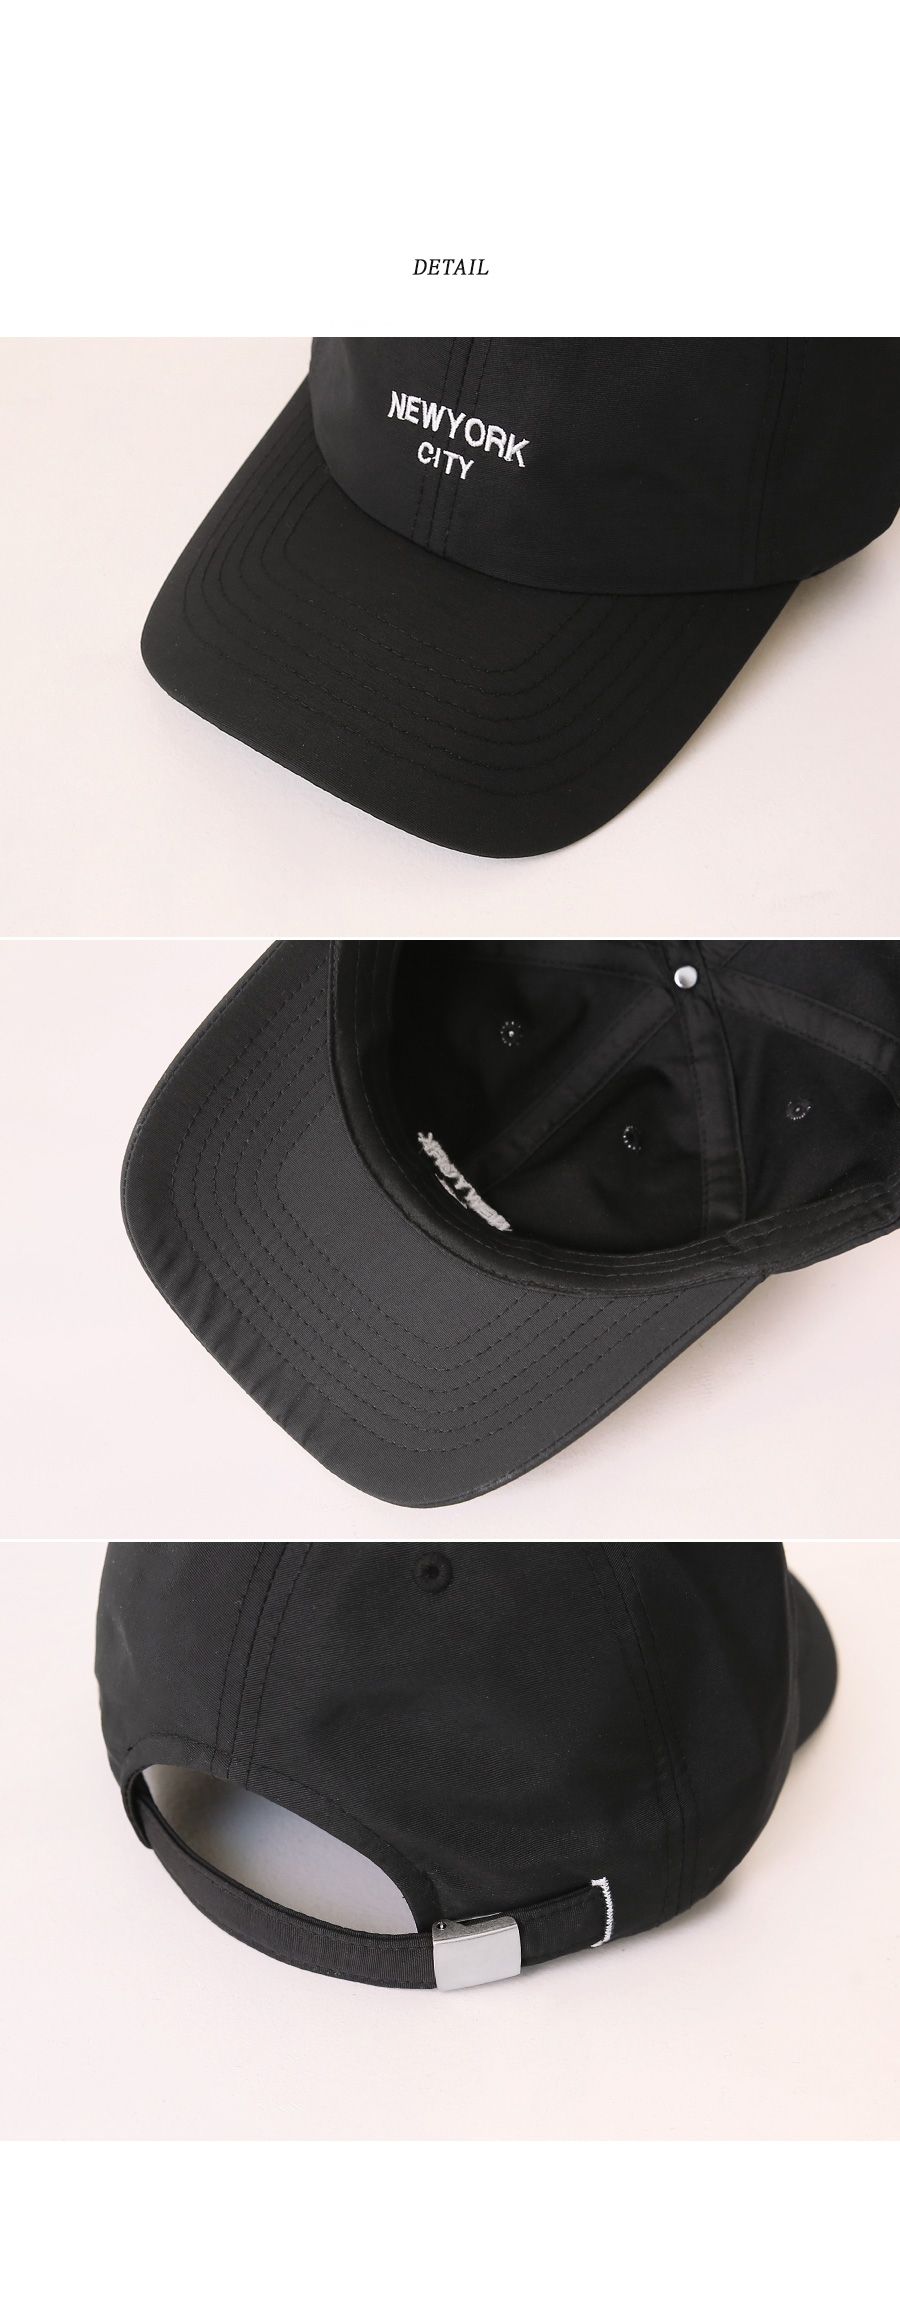 VODEN NEEDLE LETTERING BALL CAP